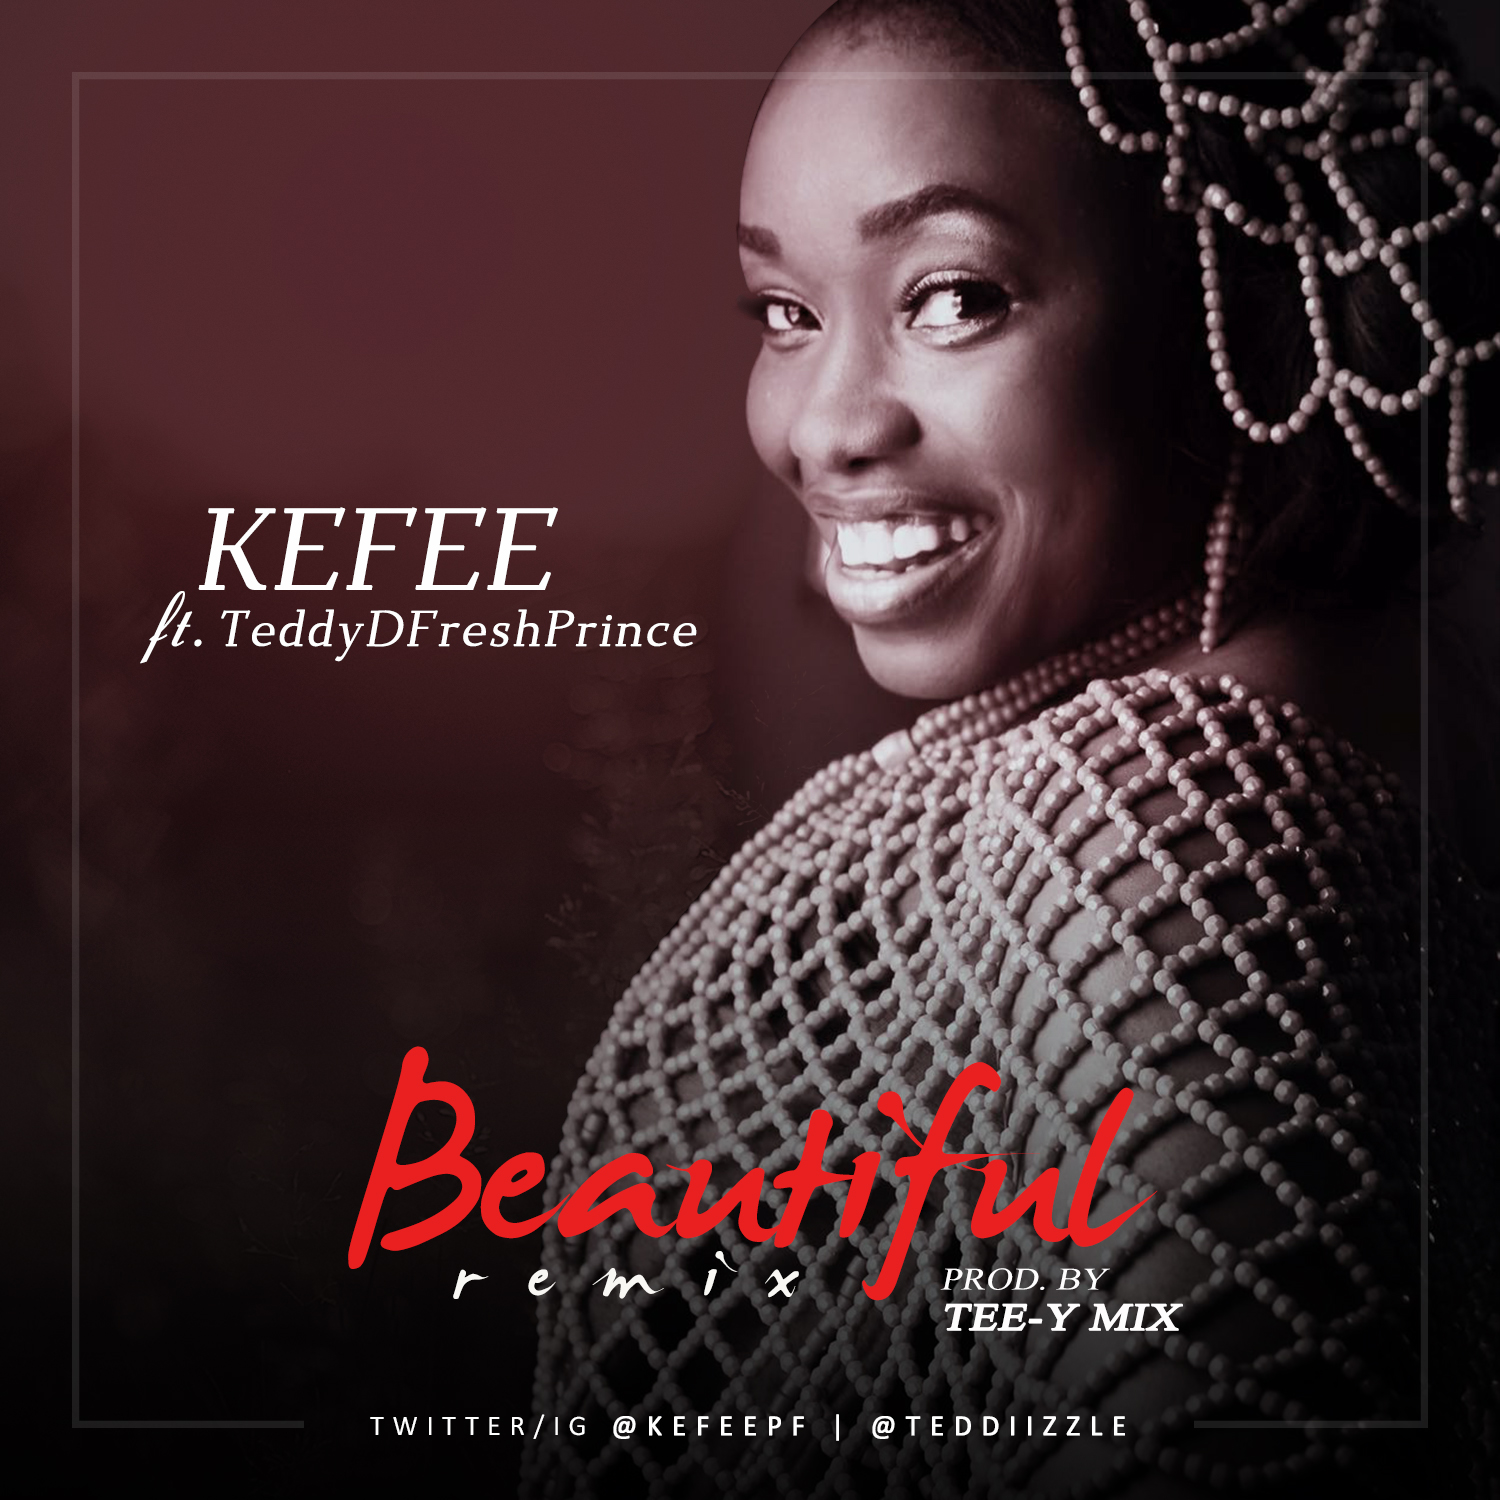 Beautiful Woman Remix MP3 Download - aiohoworg